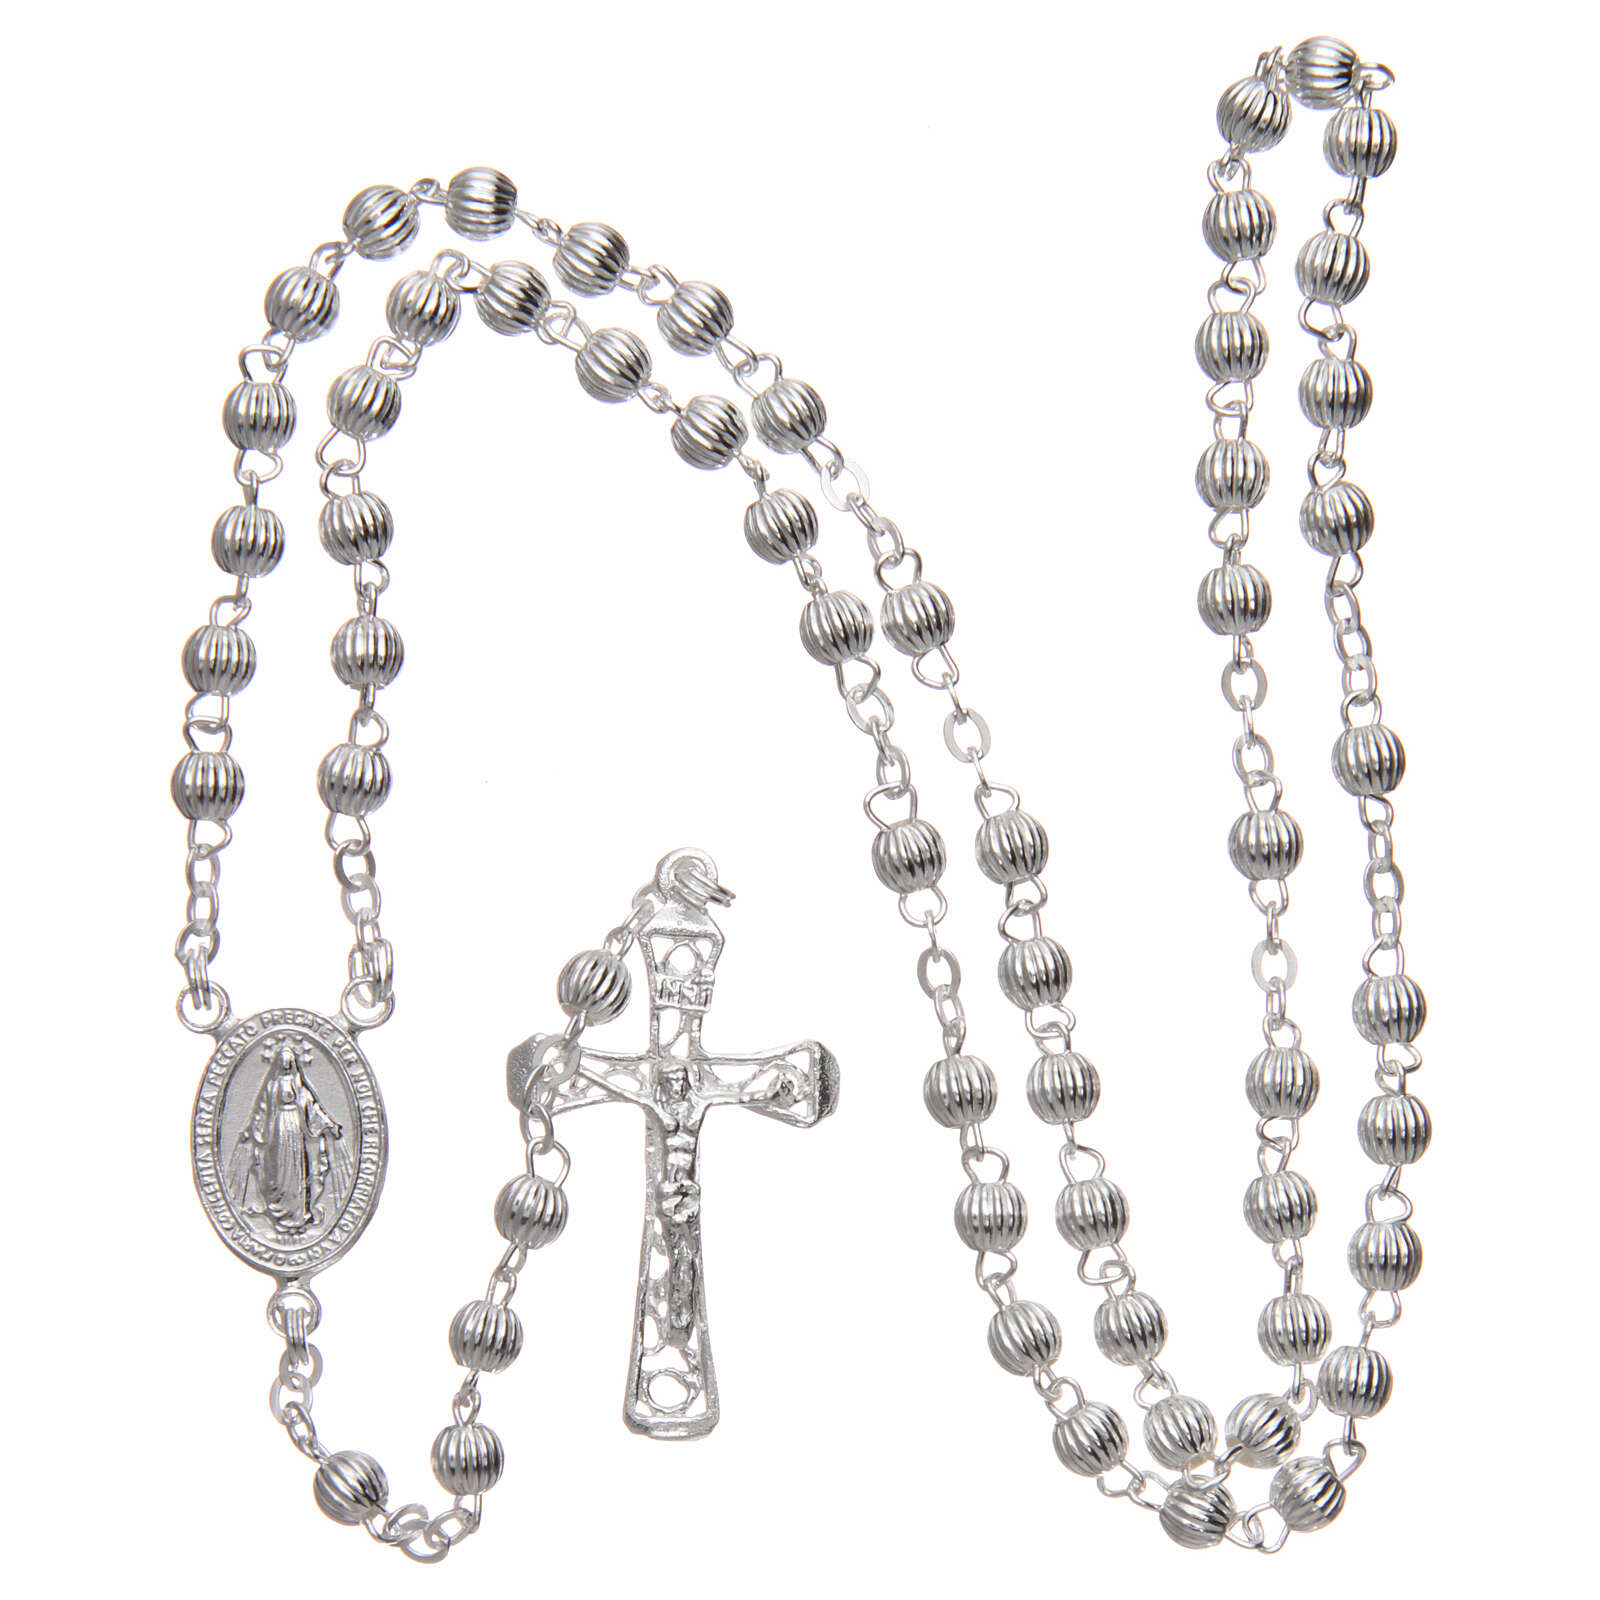 Rosary 925 silver striped beads 4 mm 4